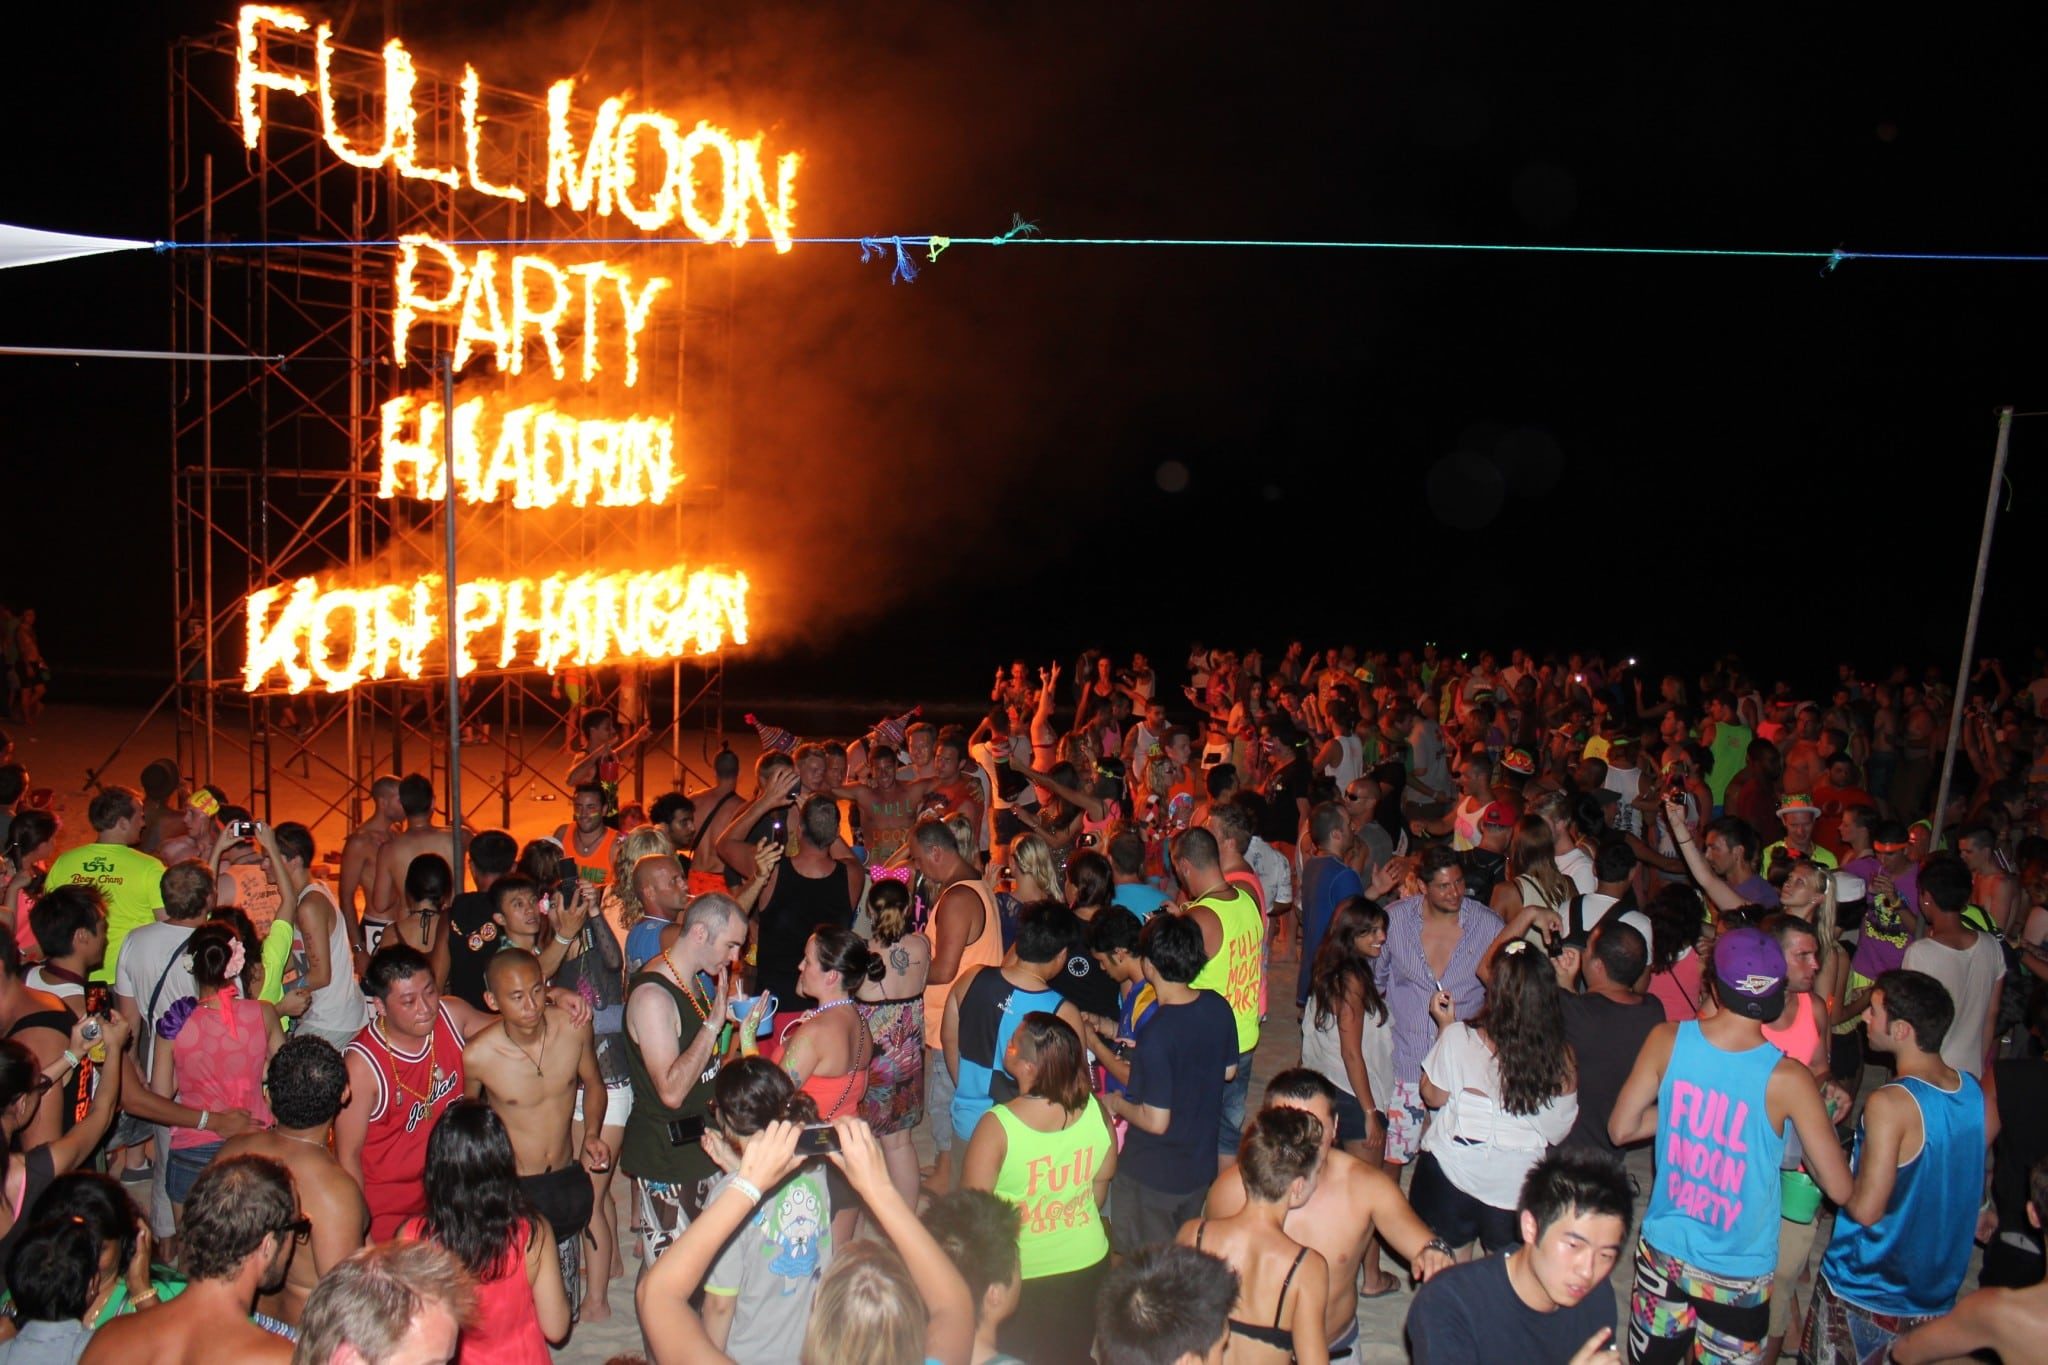 Koh Phangan, Full Moon Party